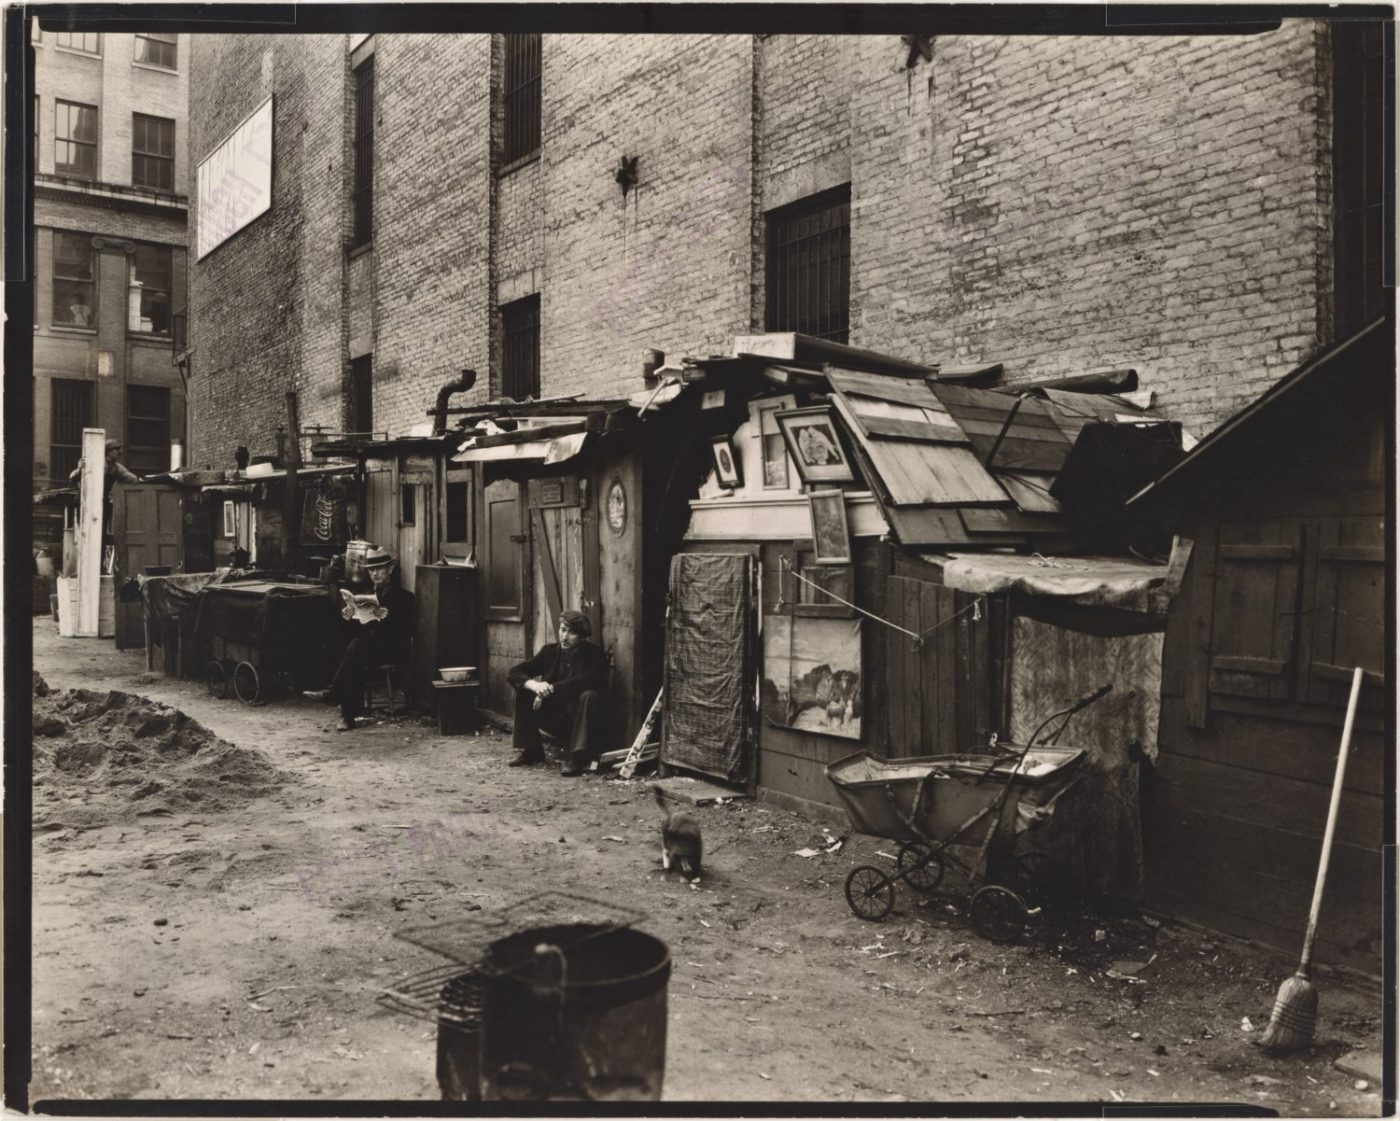 Homeless-encampment-at-West-Houston-Mercer-St.-Manhattan-NYC-1935-by-Berenice-Abbott-1400x1121, Transitional thinking: The Black Bay Area Quarantine Chronicles #1, Culture Currents